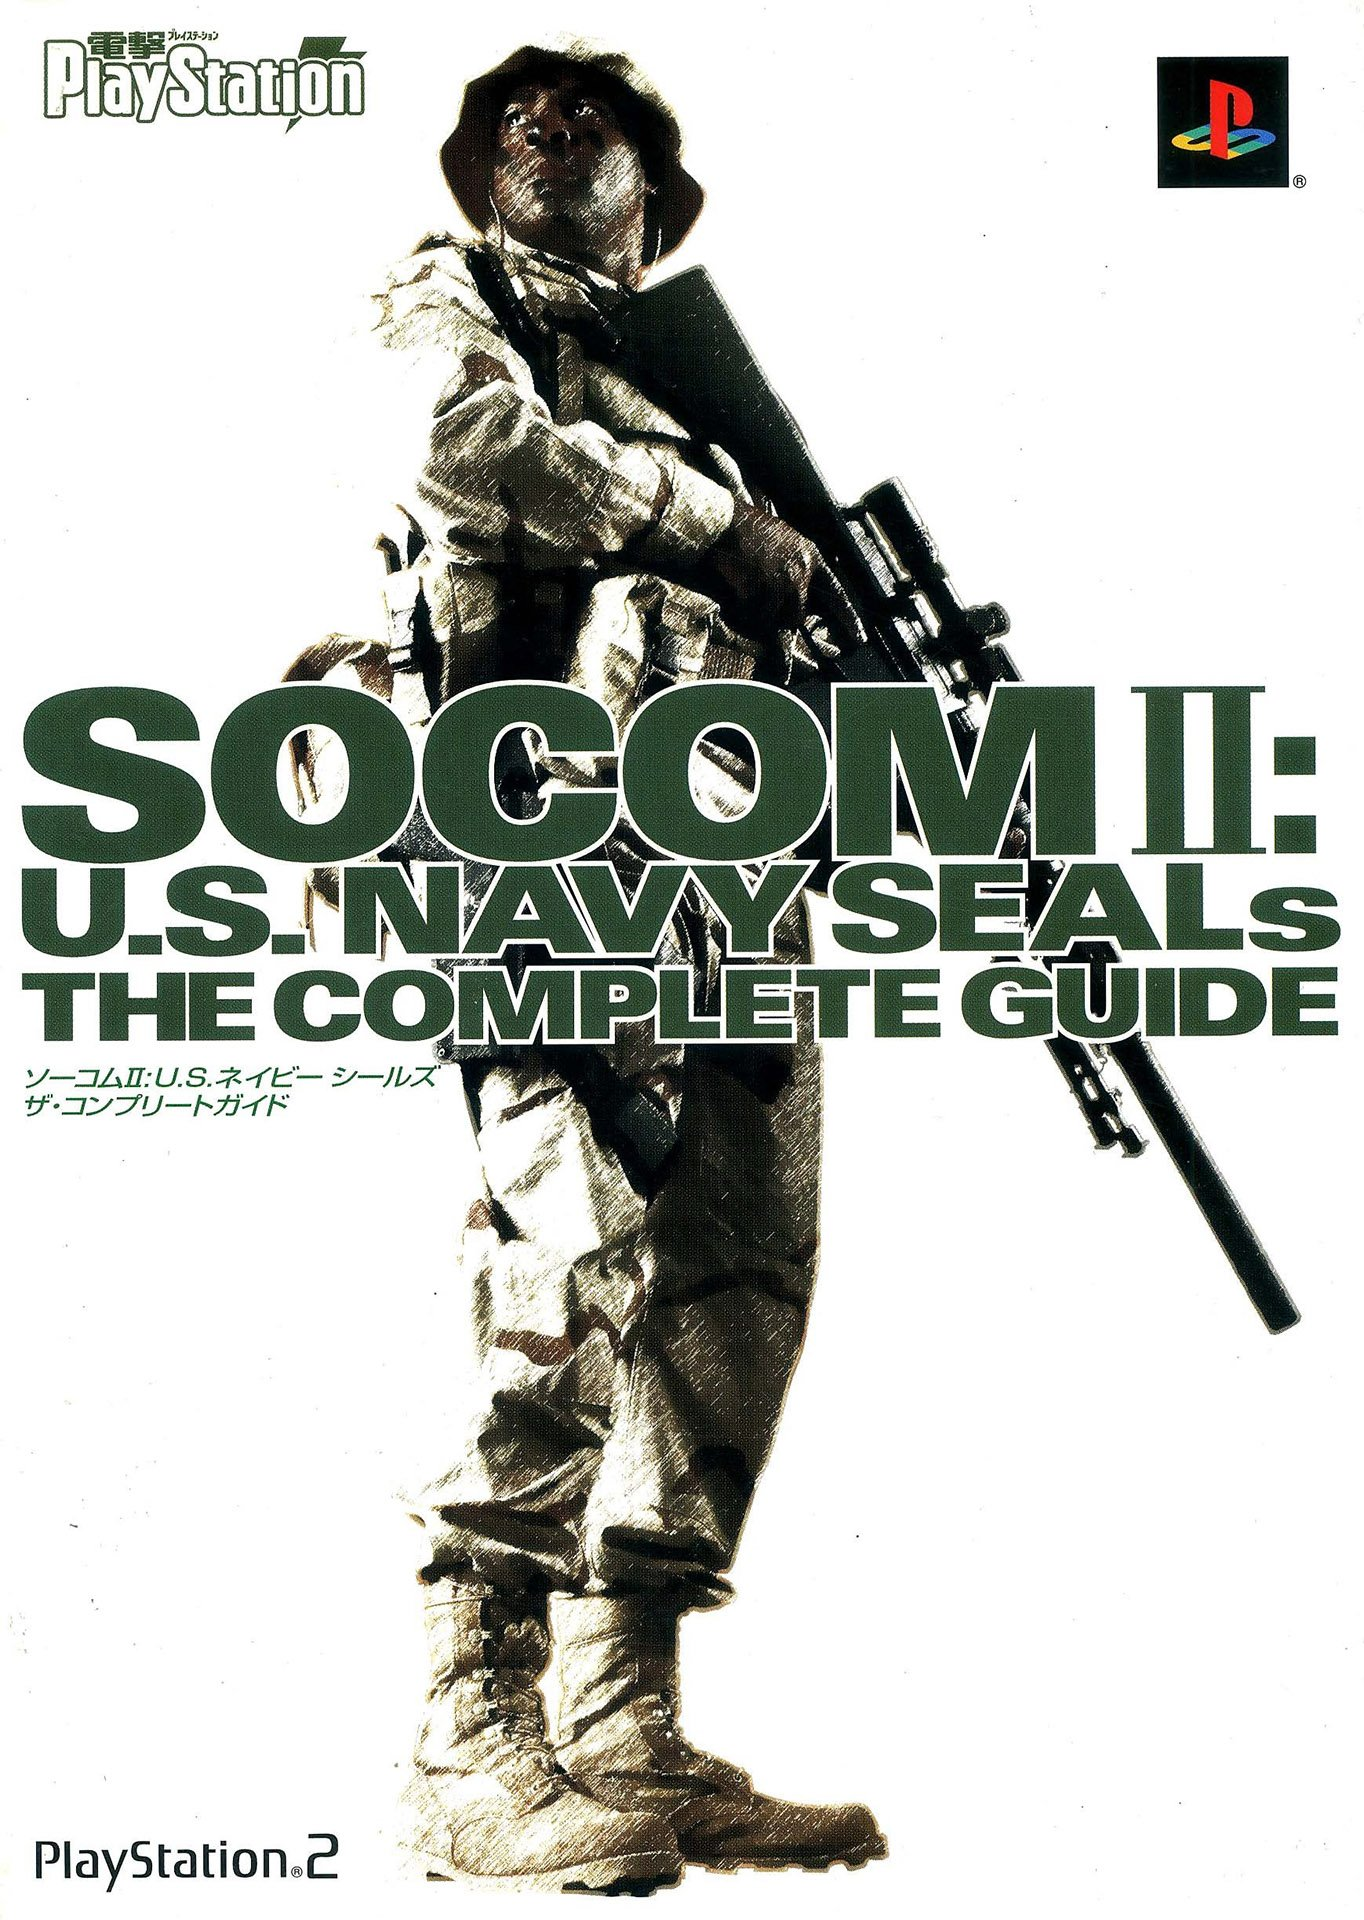 Socom II: US Navy SEALs - The Complete Guide